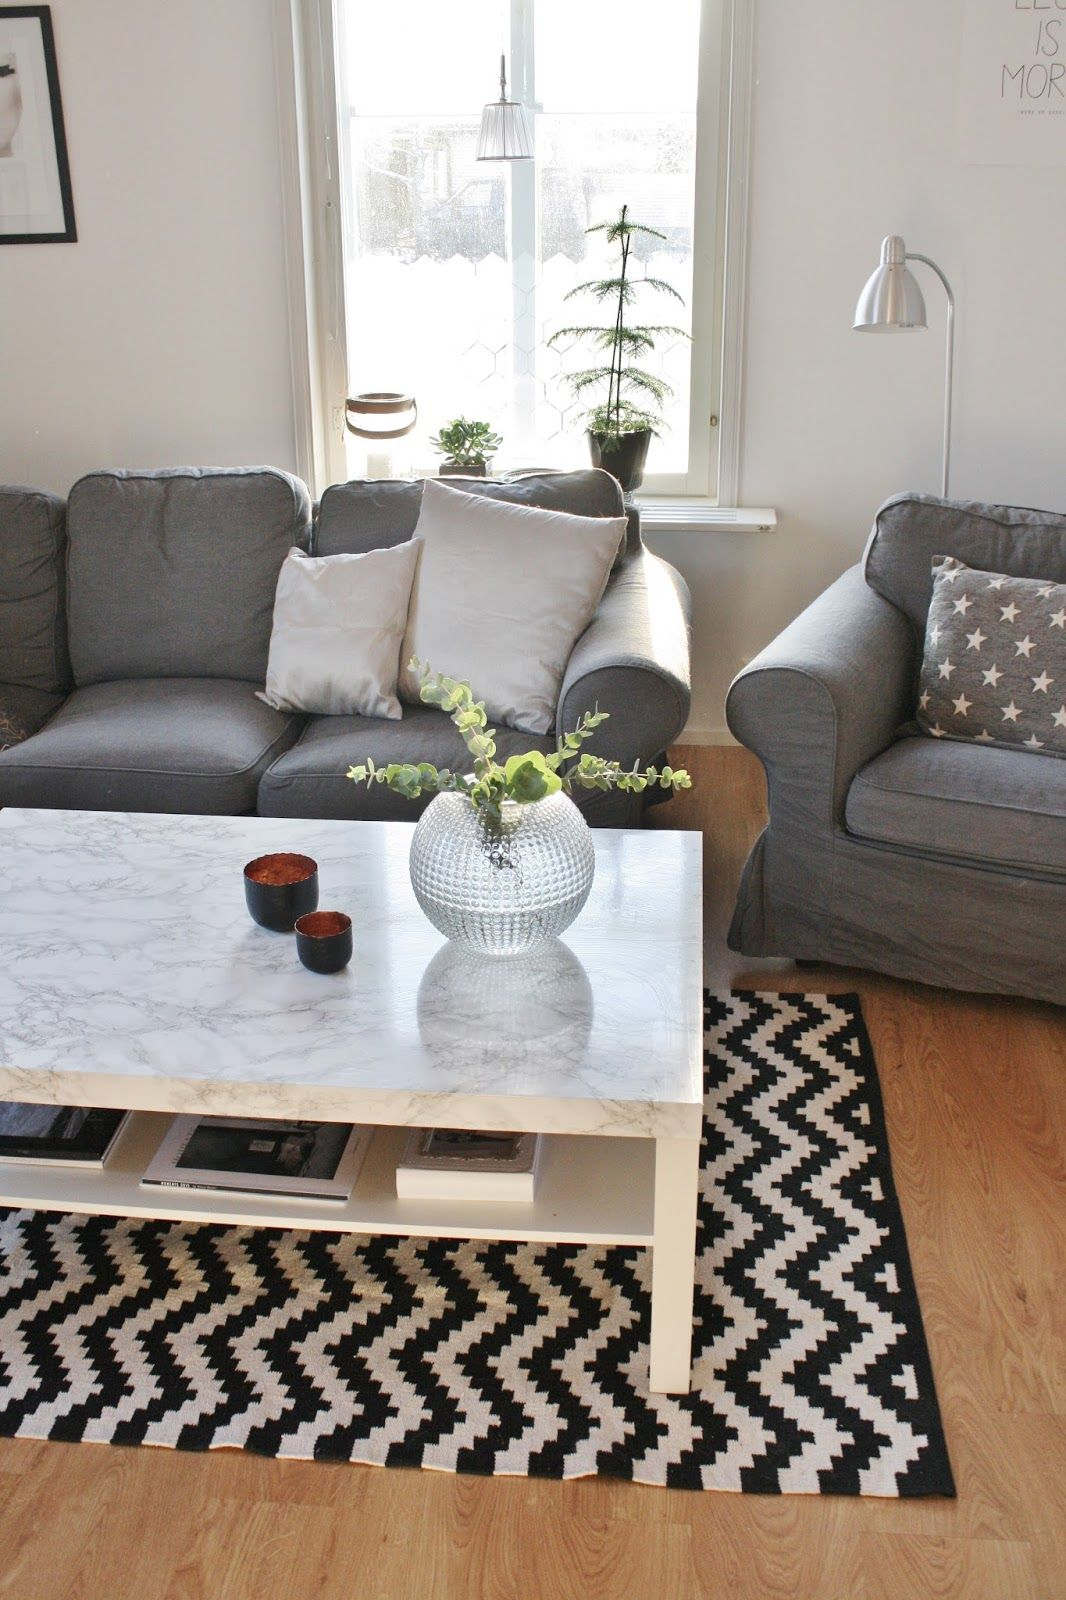 Tableau Moderne Ikea Ikea Hack Make Marble Table From Lack Our New Home In 2018